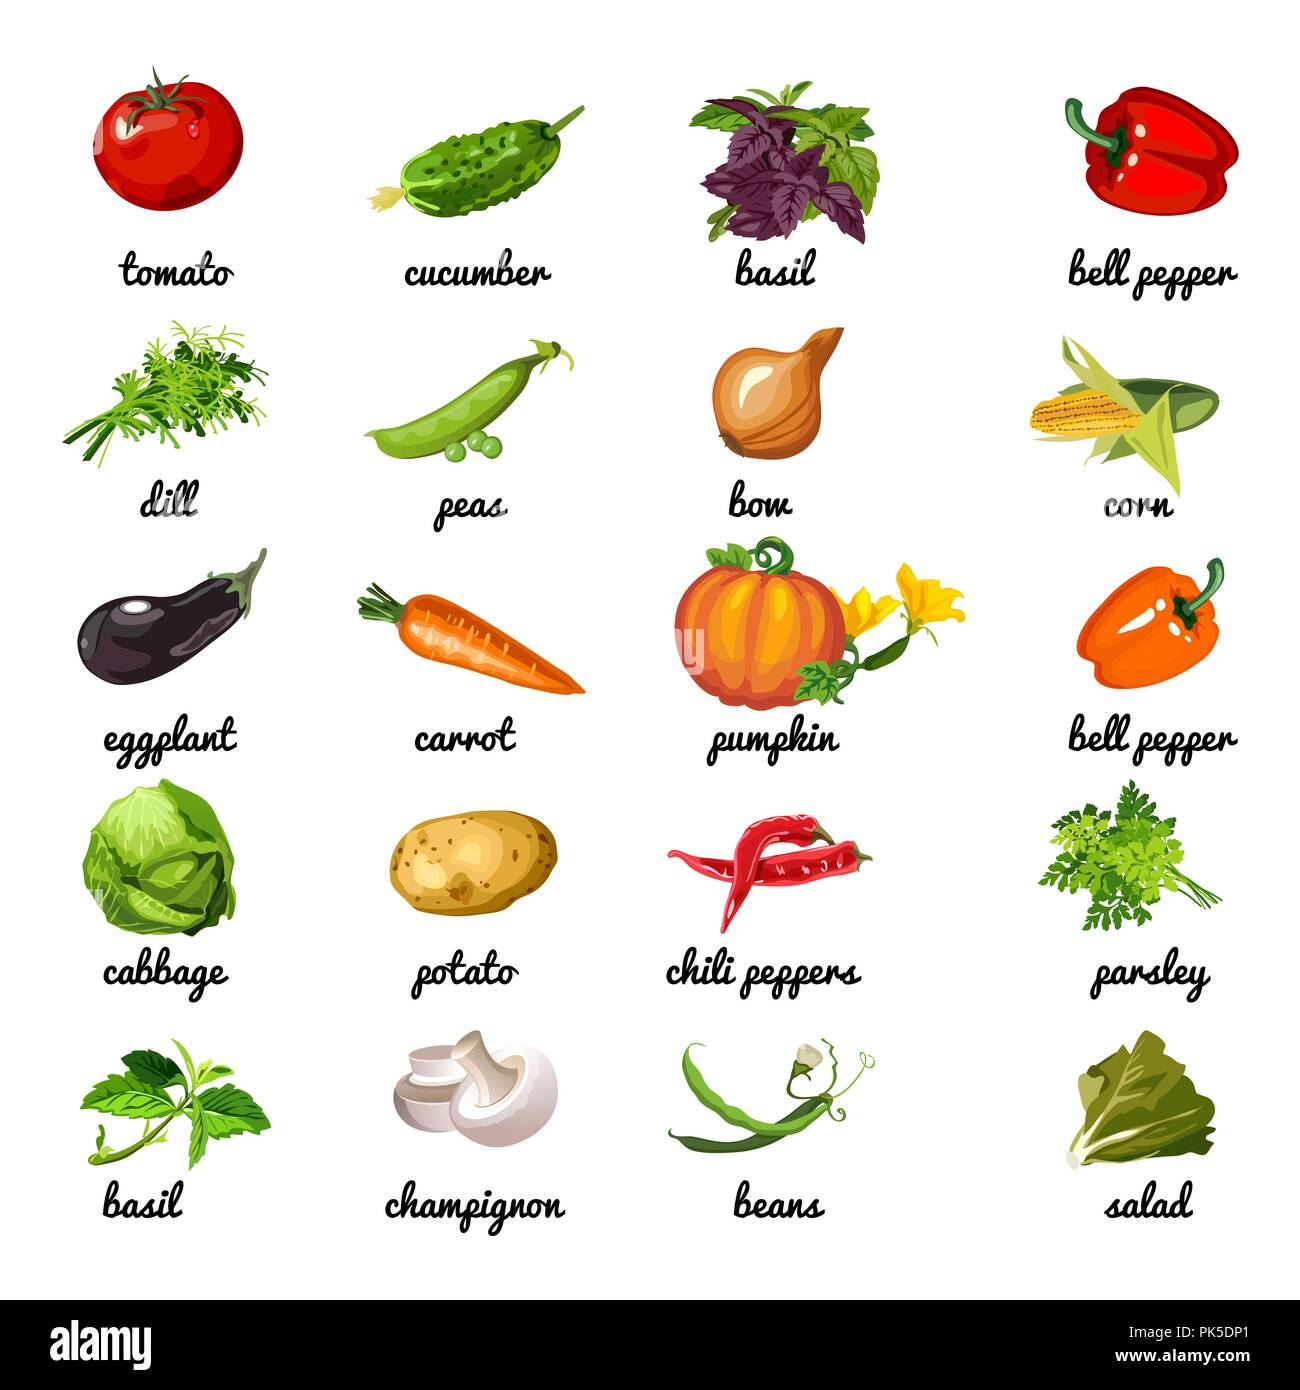 Cute Poster On Topic Of Healthyt Vegetables And Herbs